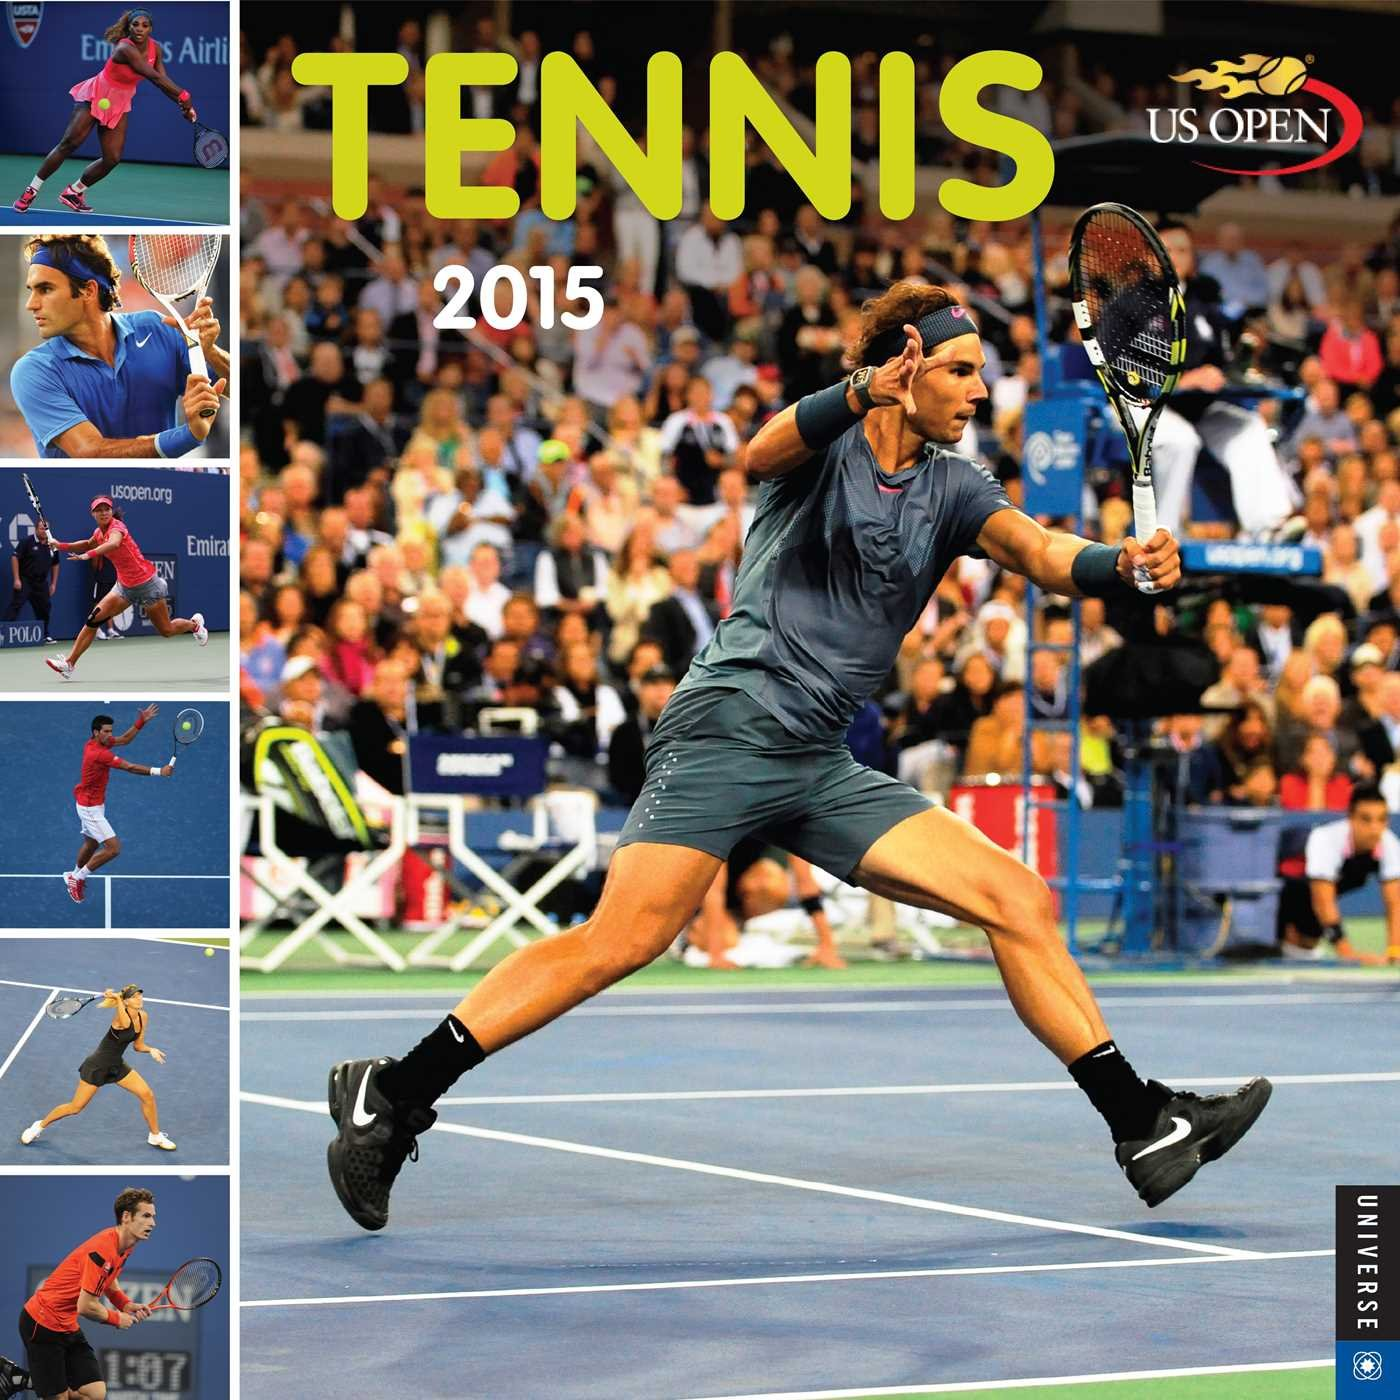 Tennis 2015 Wall Calendar: The Official US Open Calendar Calendar – Wall Calendar, July 29, 2014